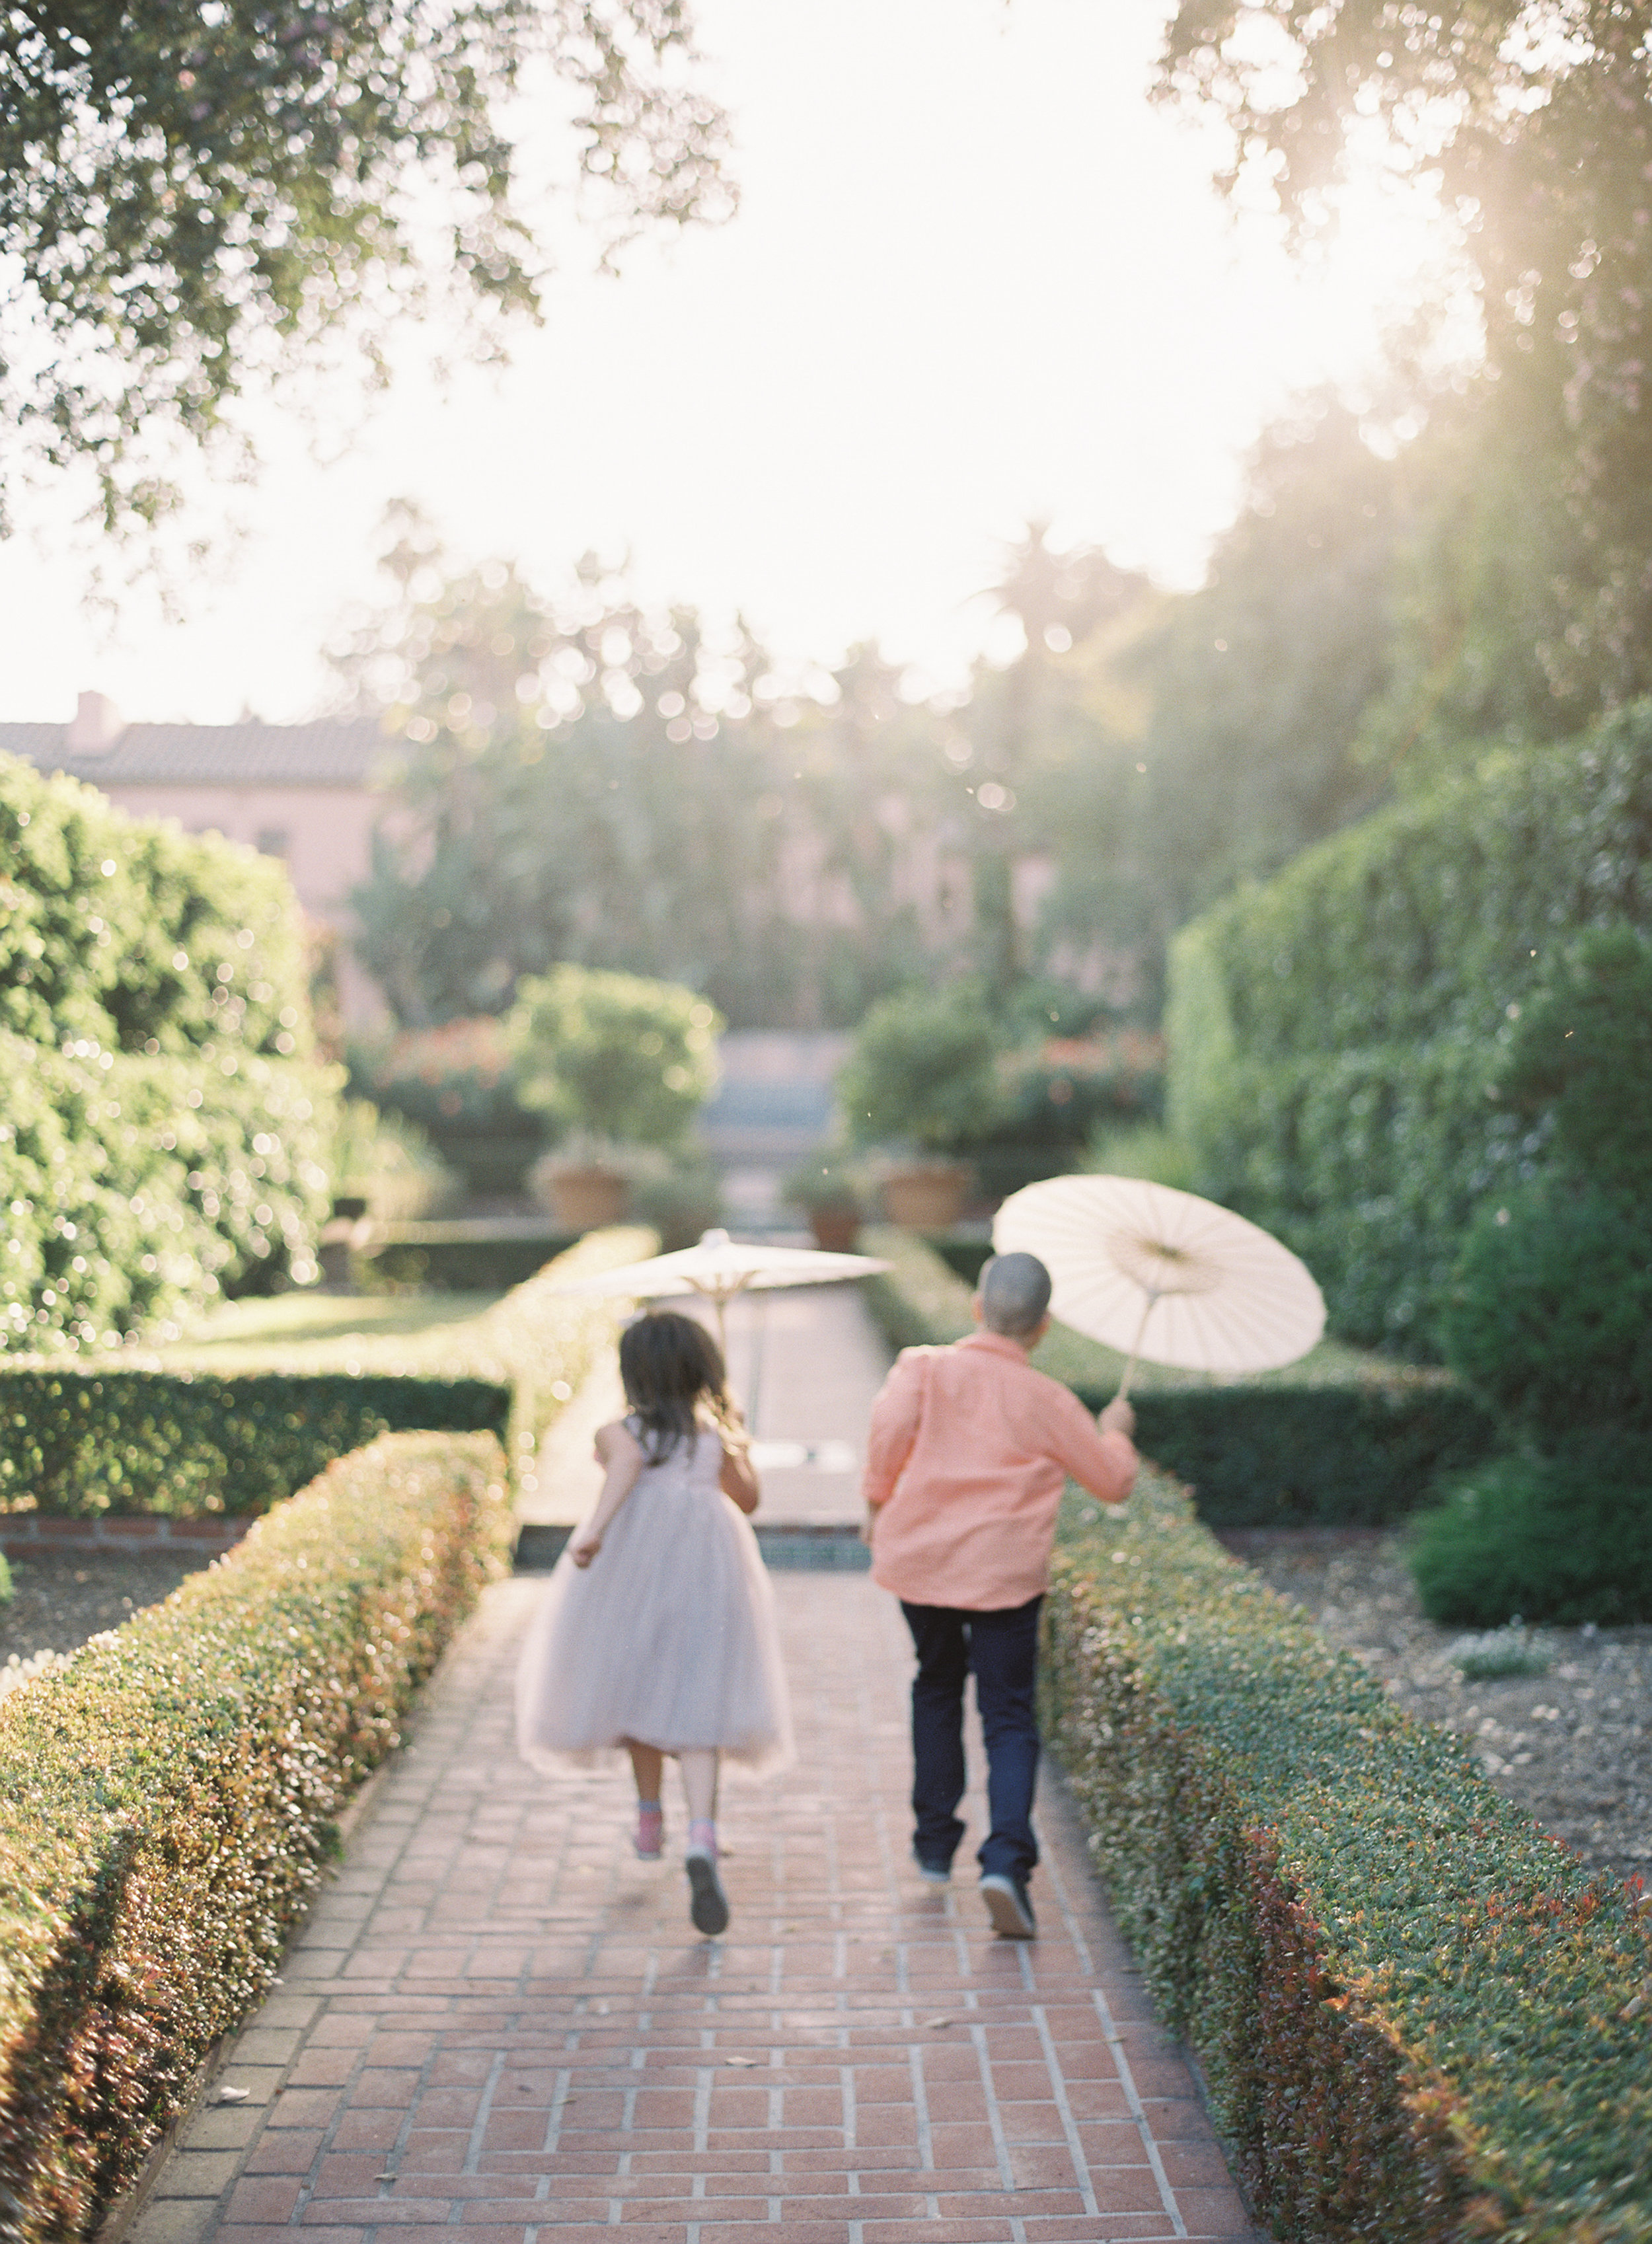 young wedding guests with paper umbrellas